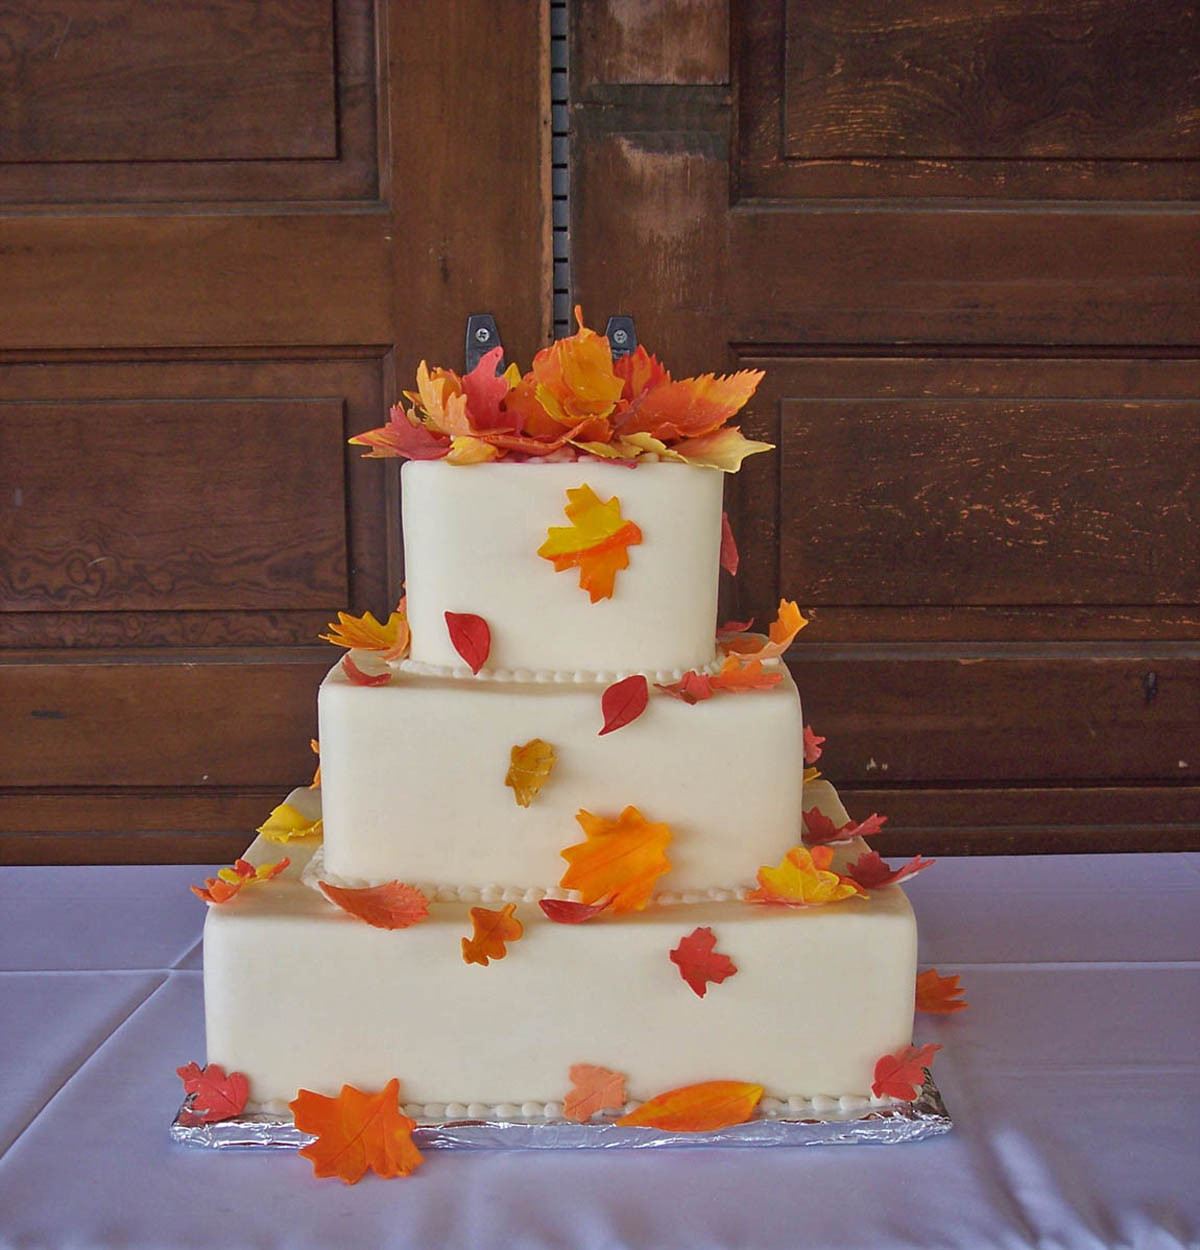 Autumn Wedding Cakes  GAME Build a fall themed wedding NWR Chit Chat